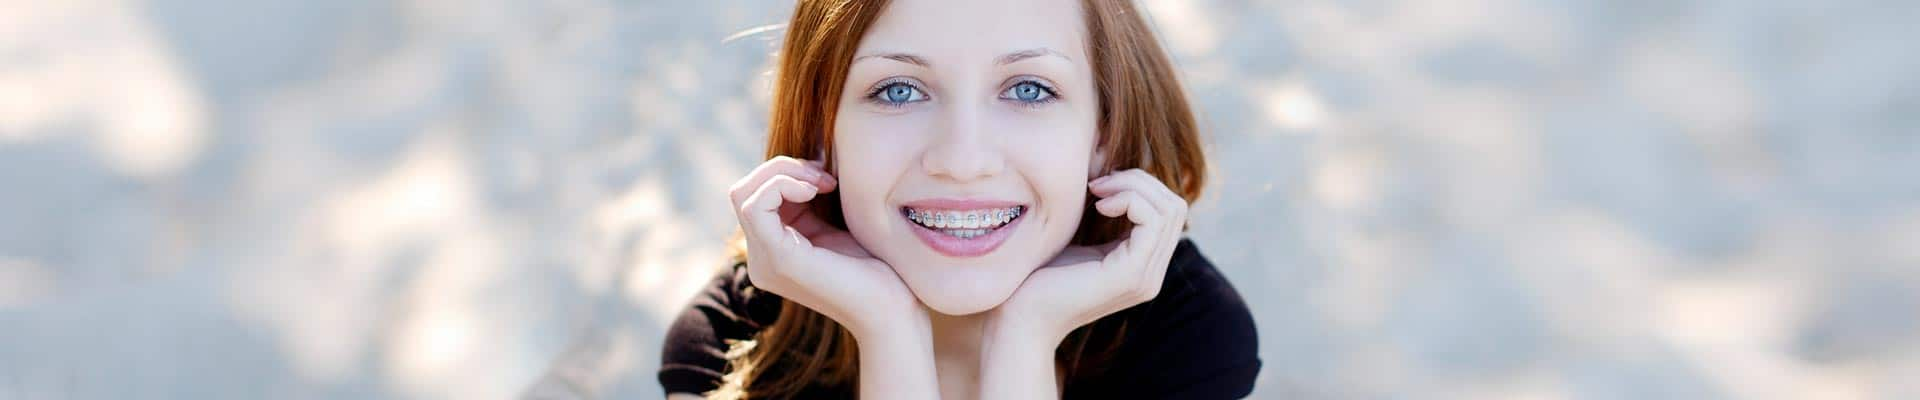 About Orthodontics Nebraska Orthodontics Lincoln NE